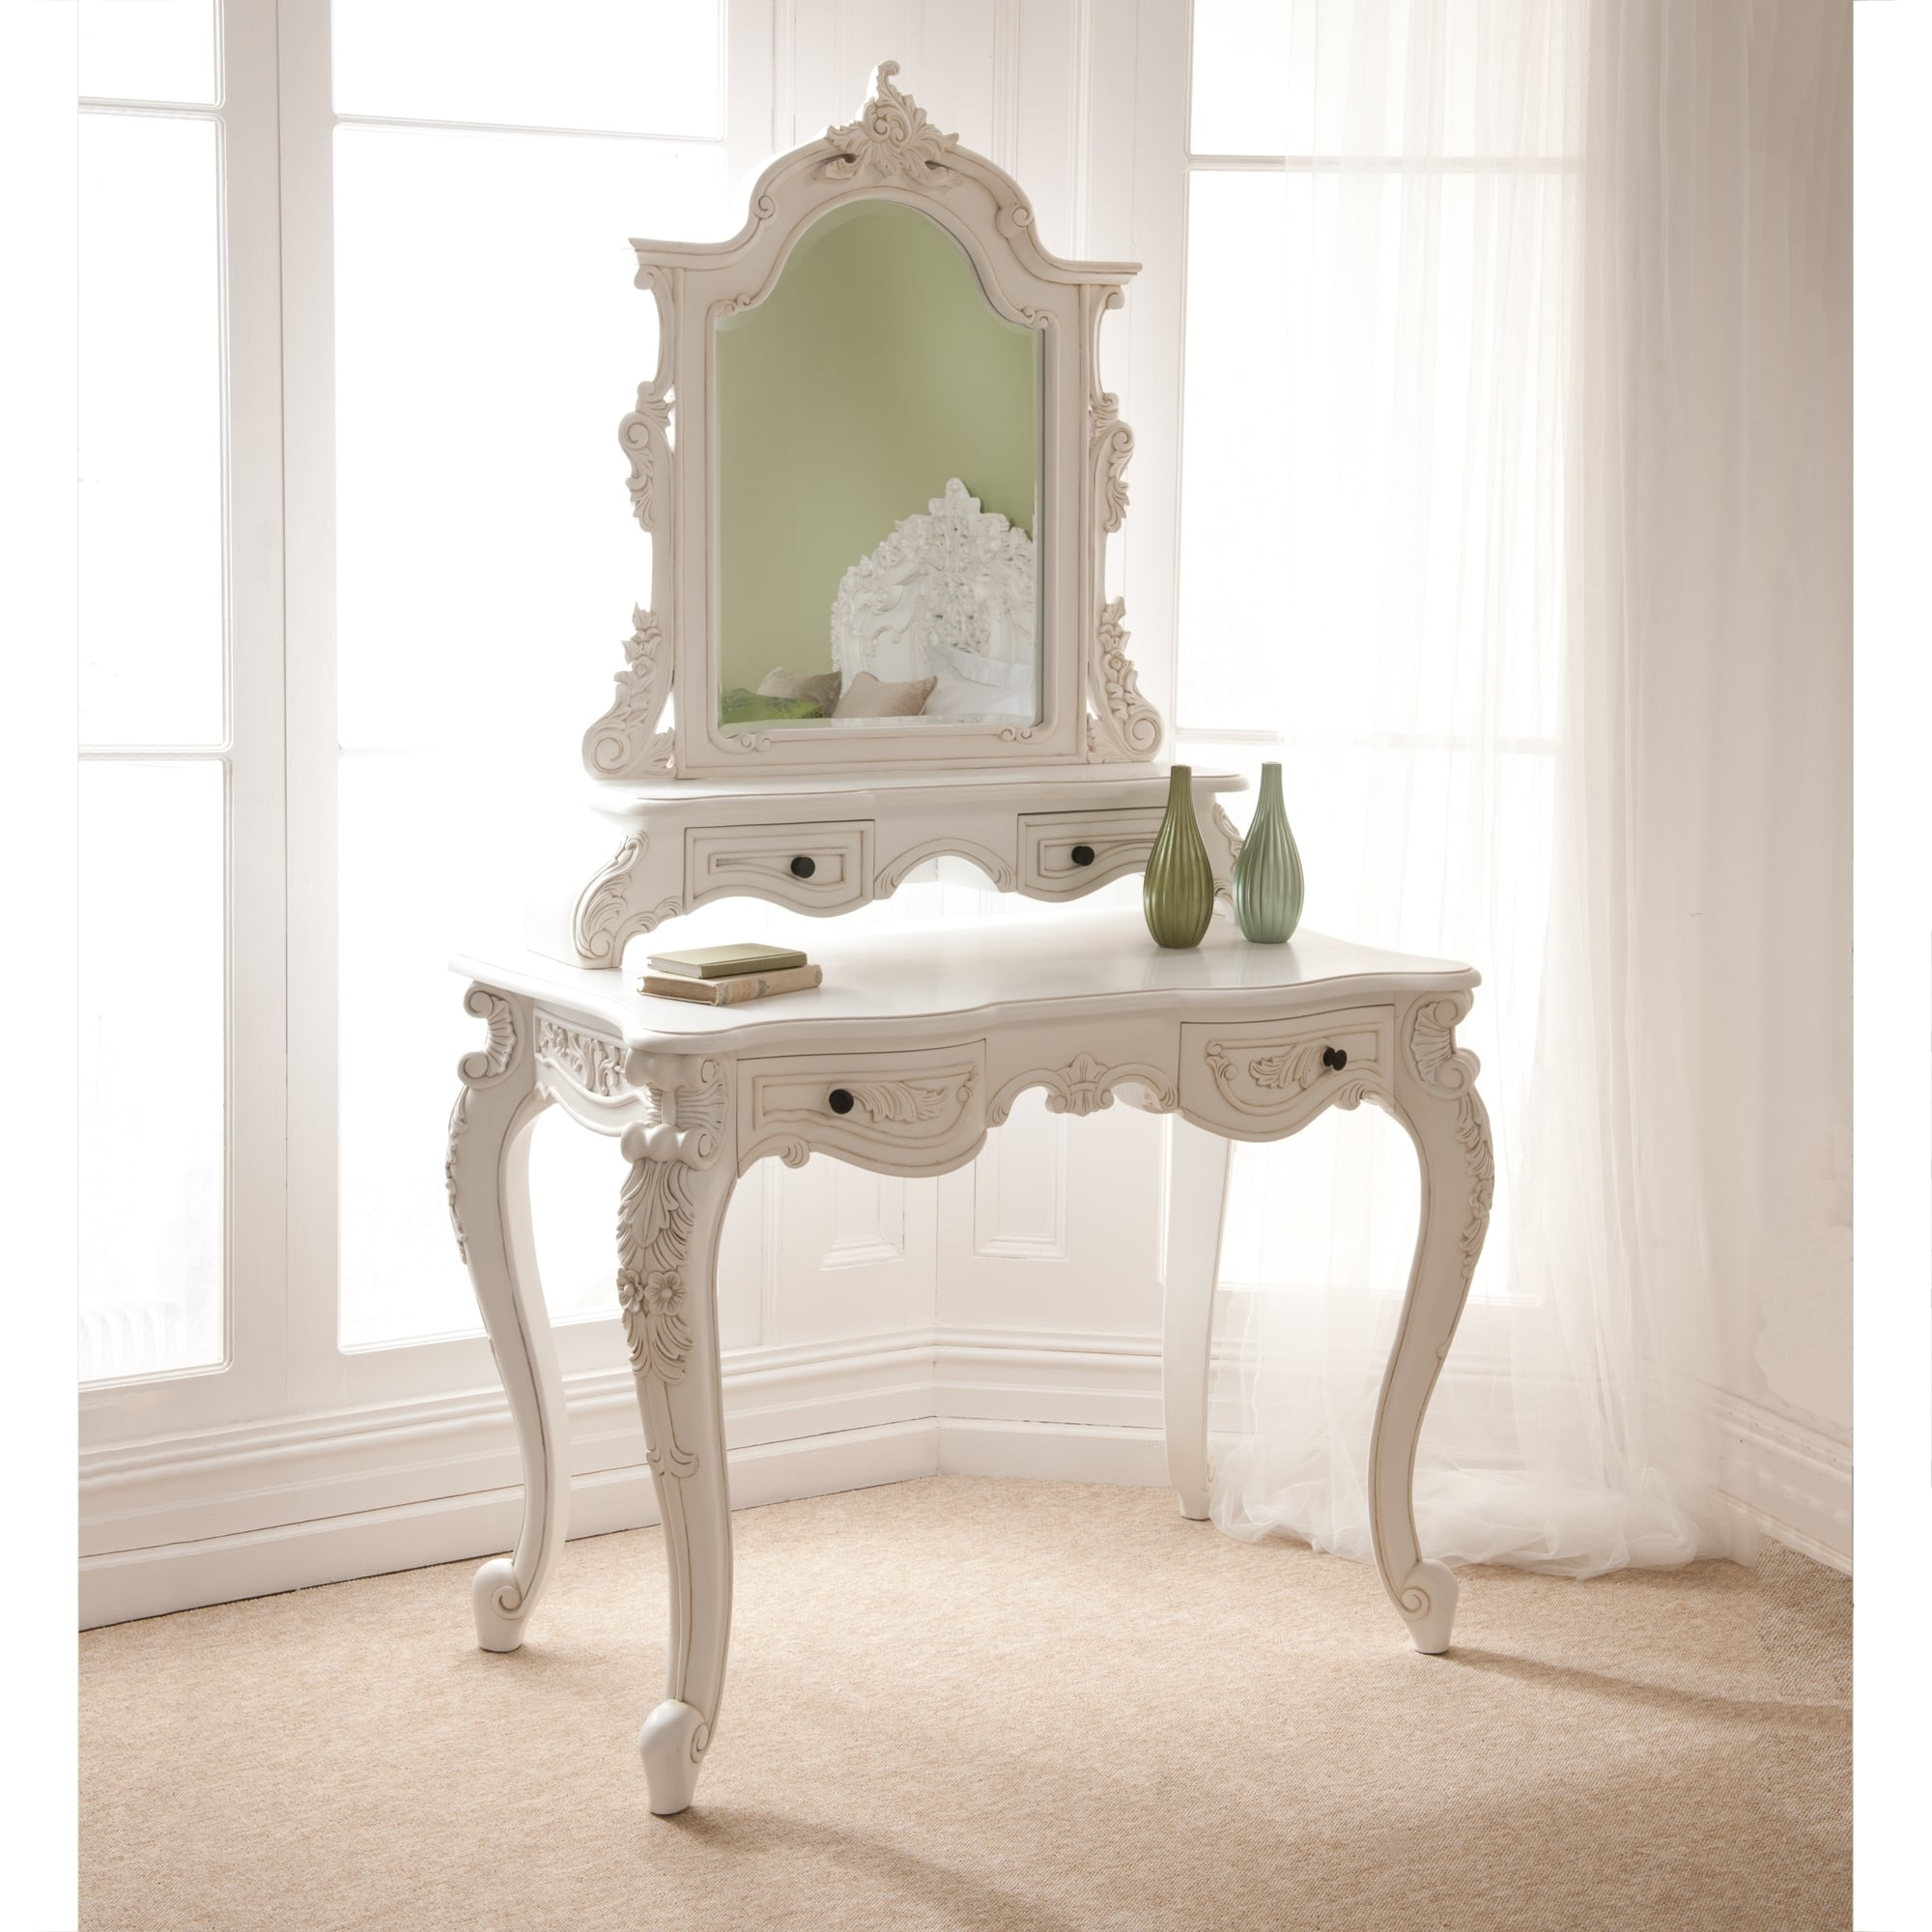 Rococo antique french dressing table white bedroom furniture for French style bedroom furniture